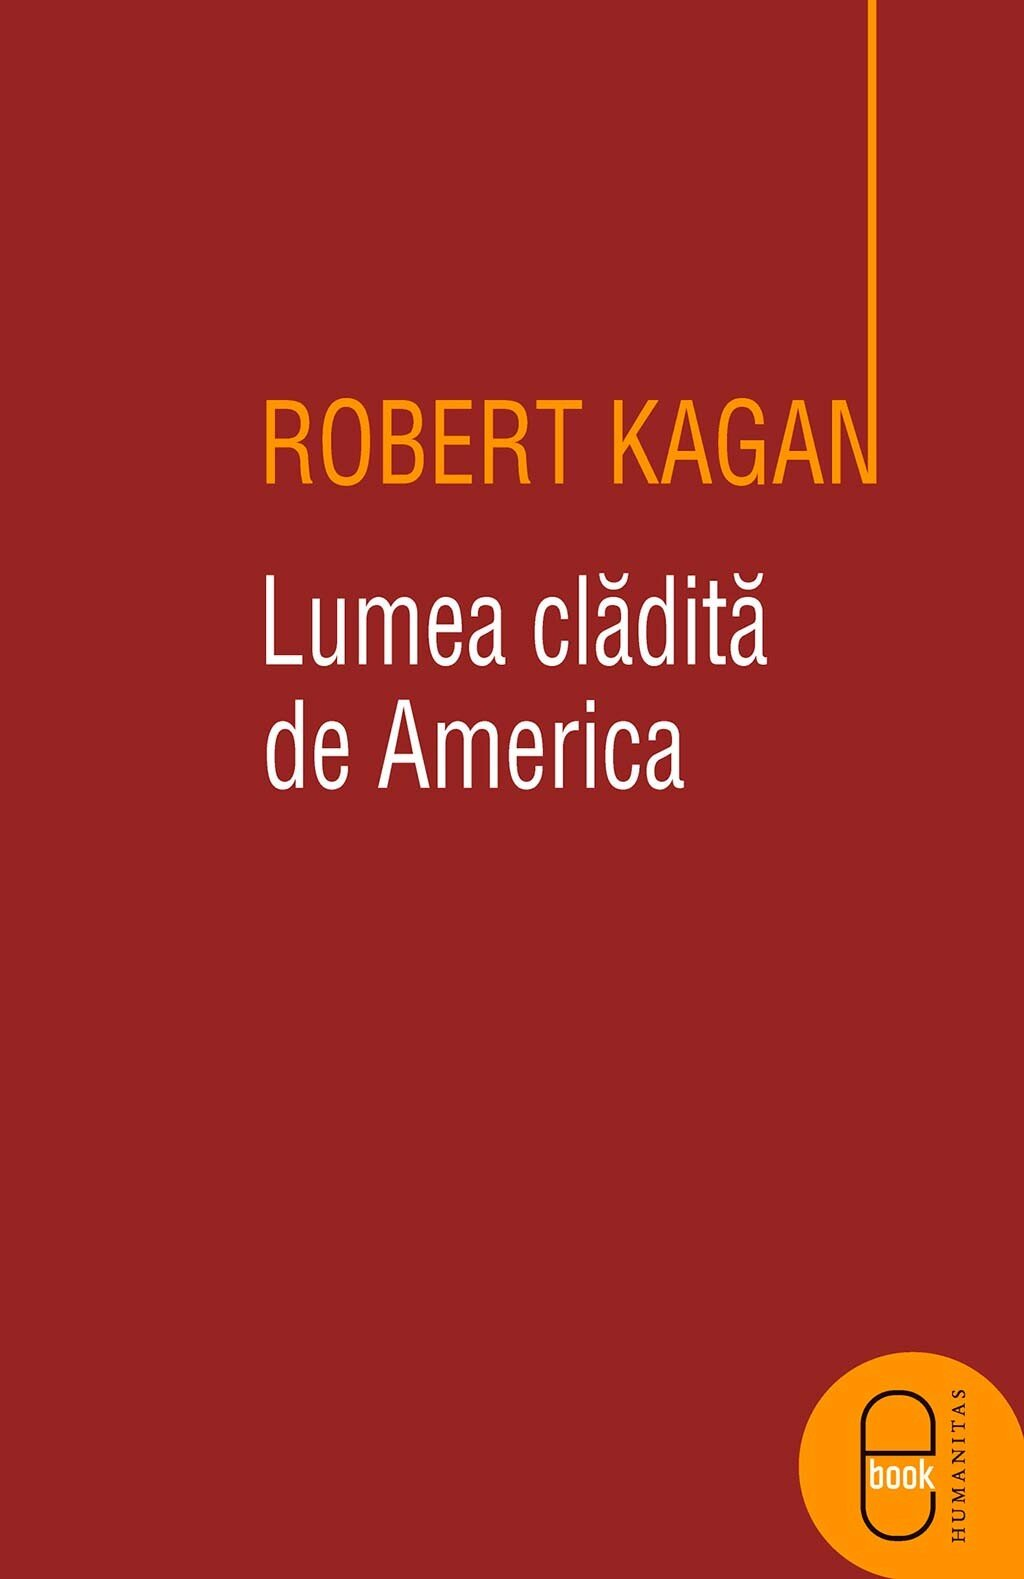 Lumea cladita de America PDF (Download eBook)